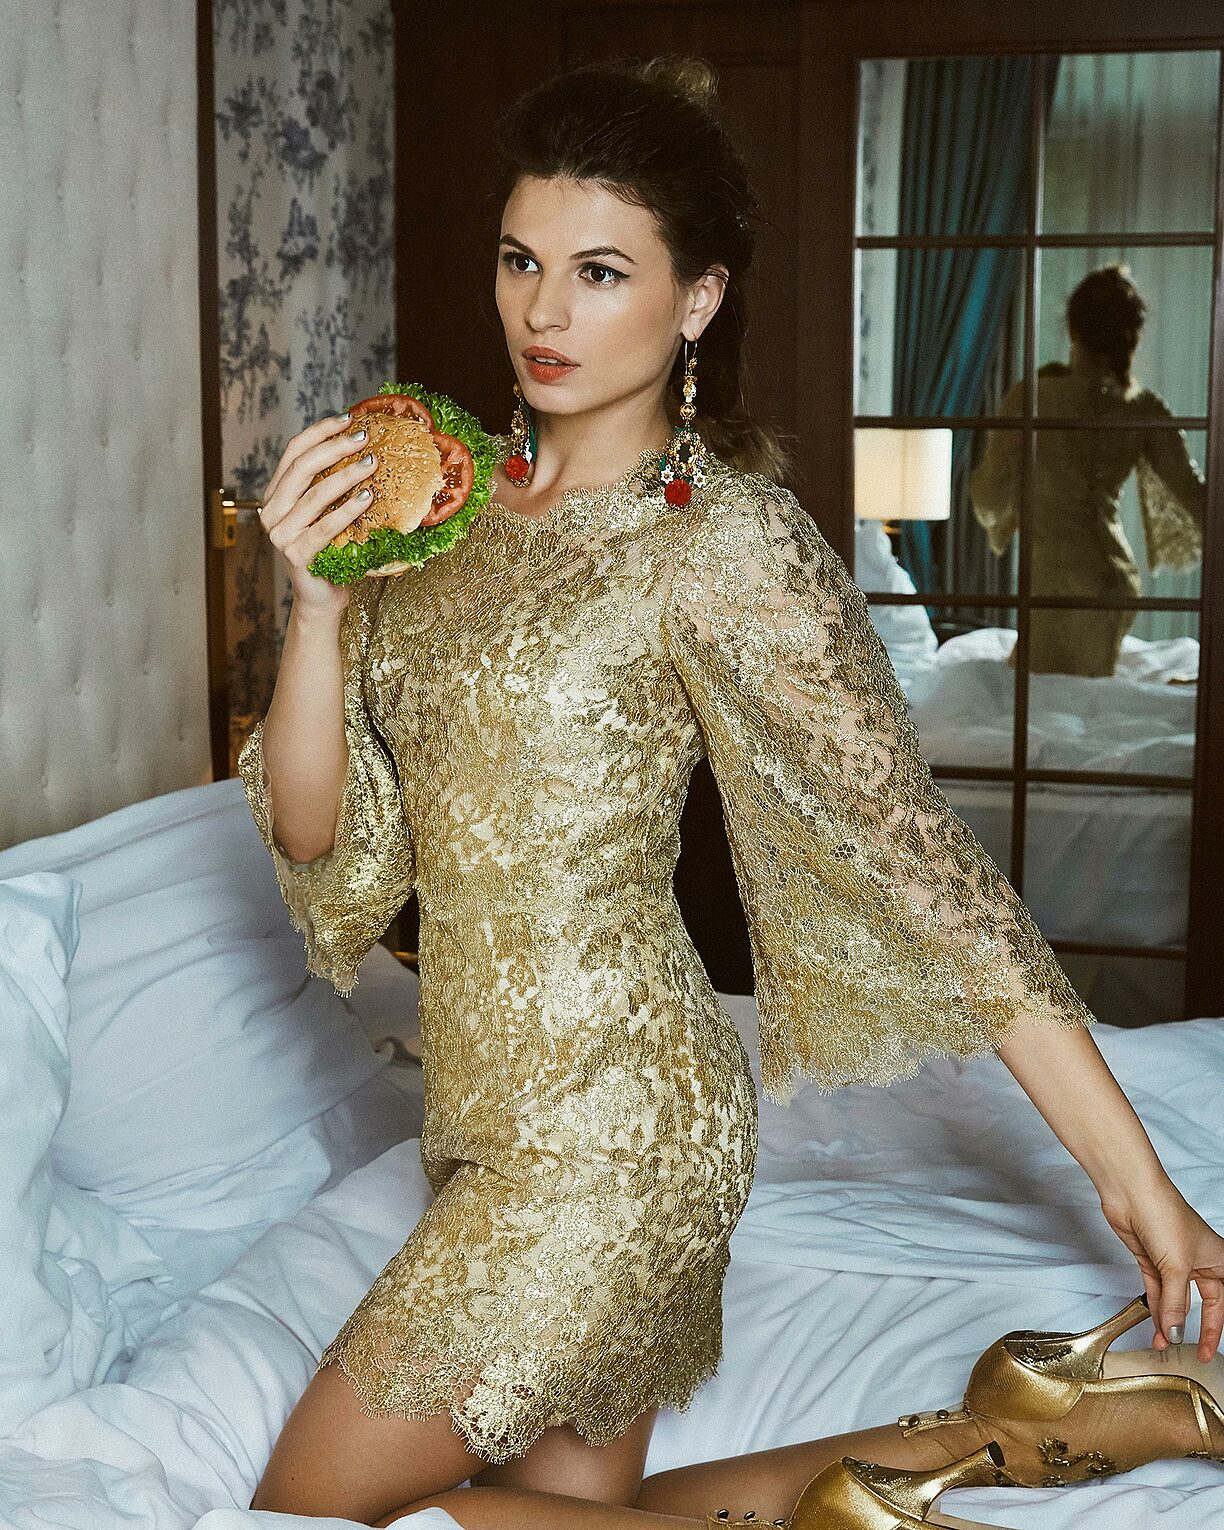 A model wth brown hair wears big earrings and knees on the bed in a golden dress with golden shoes. She hold a burger in her right hand.